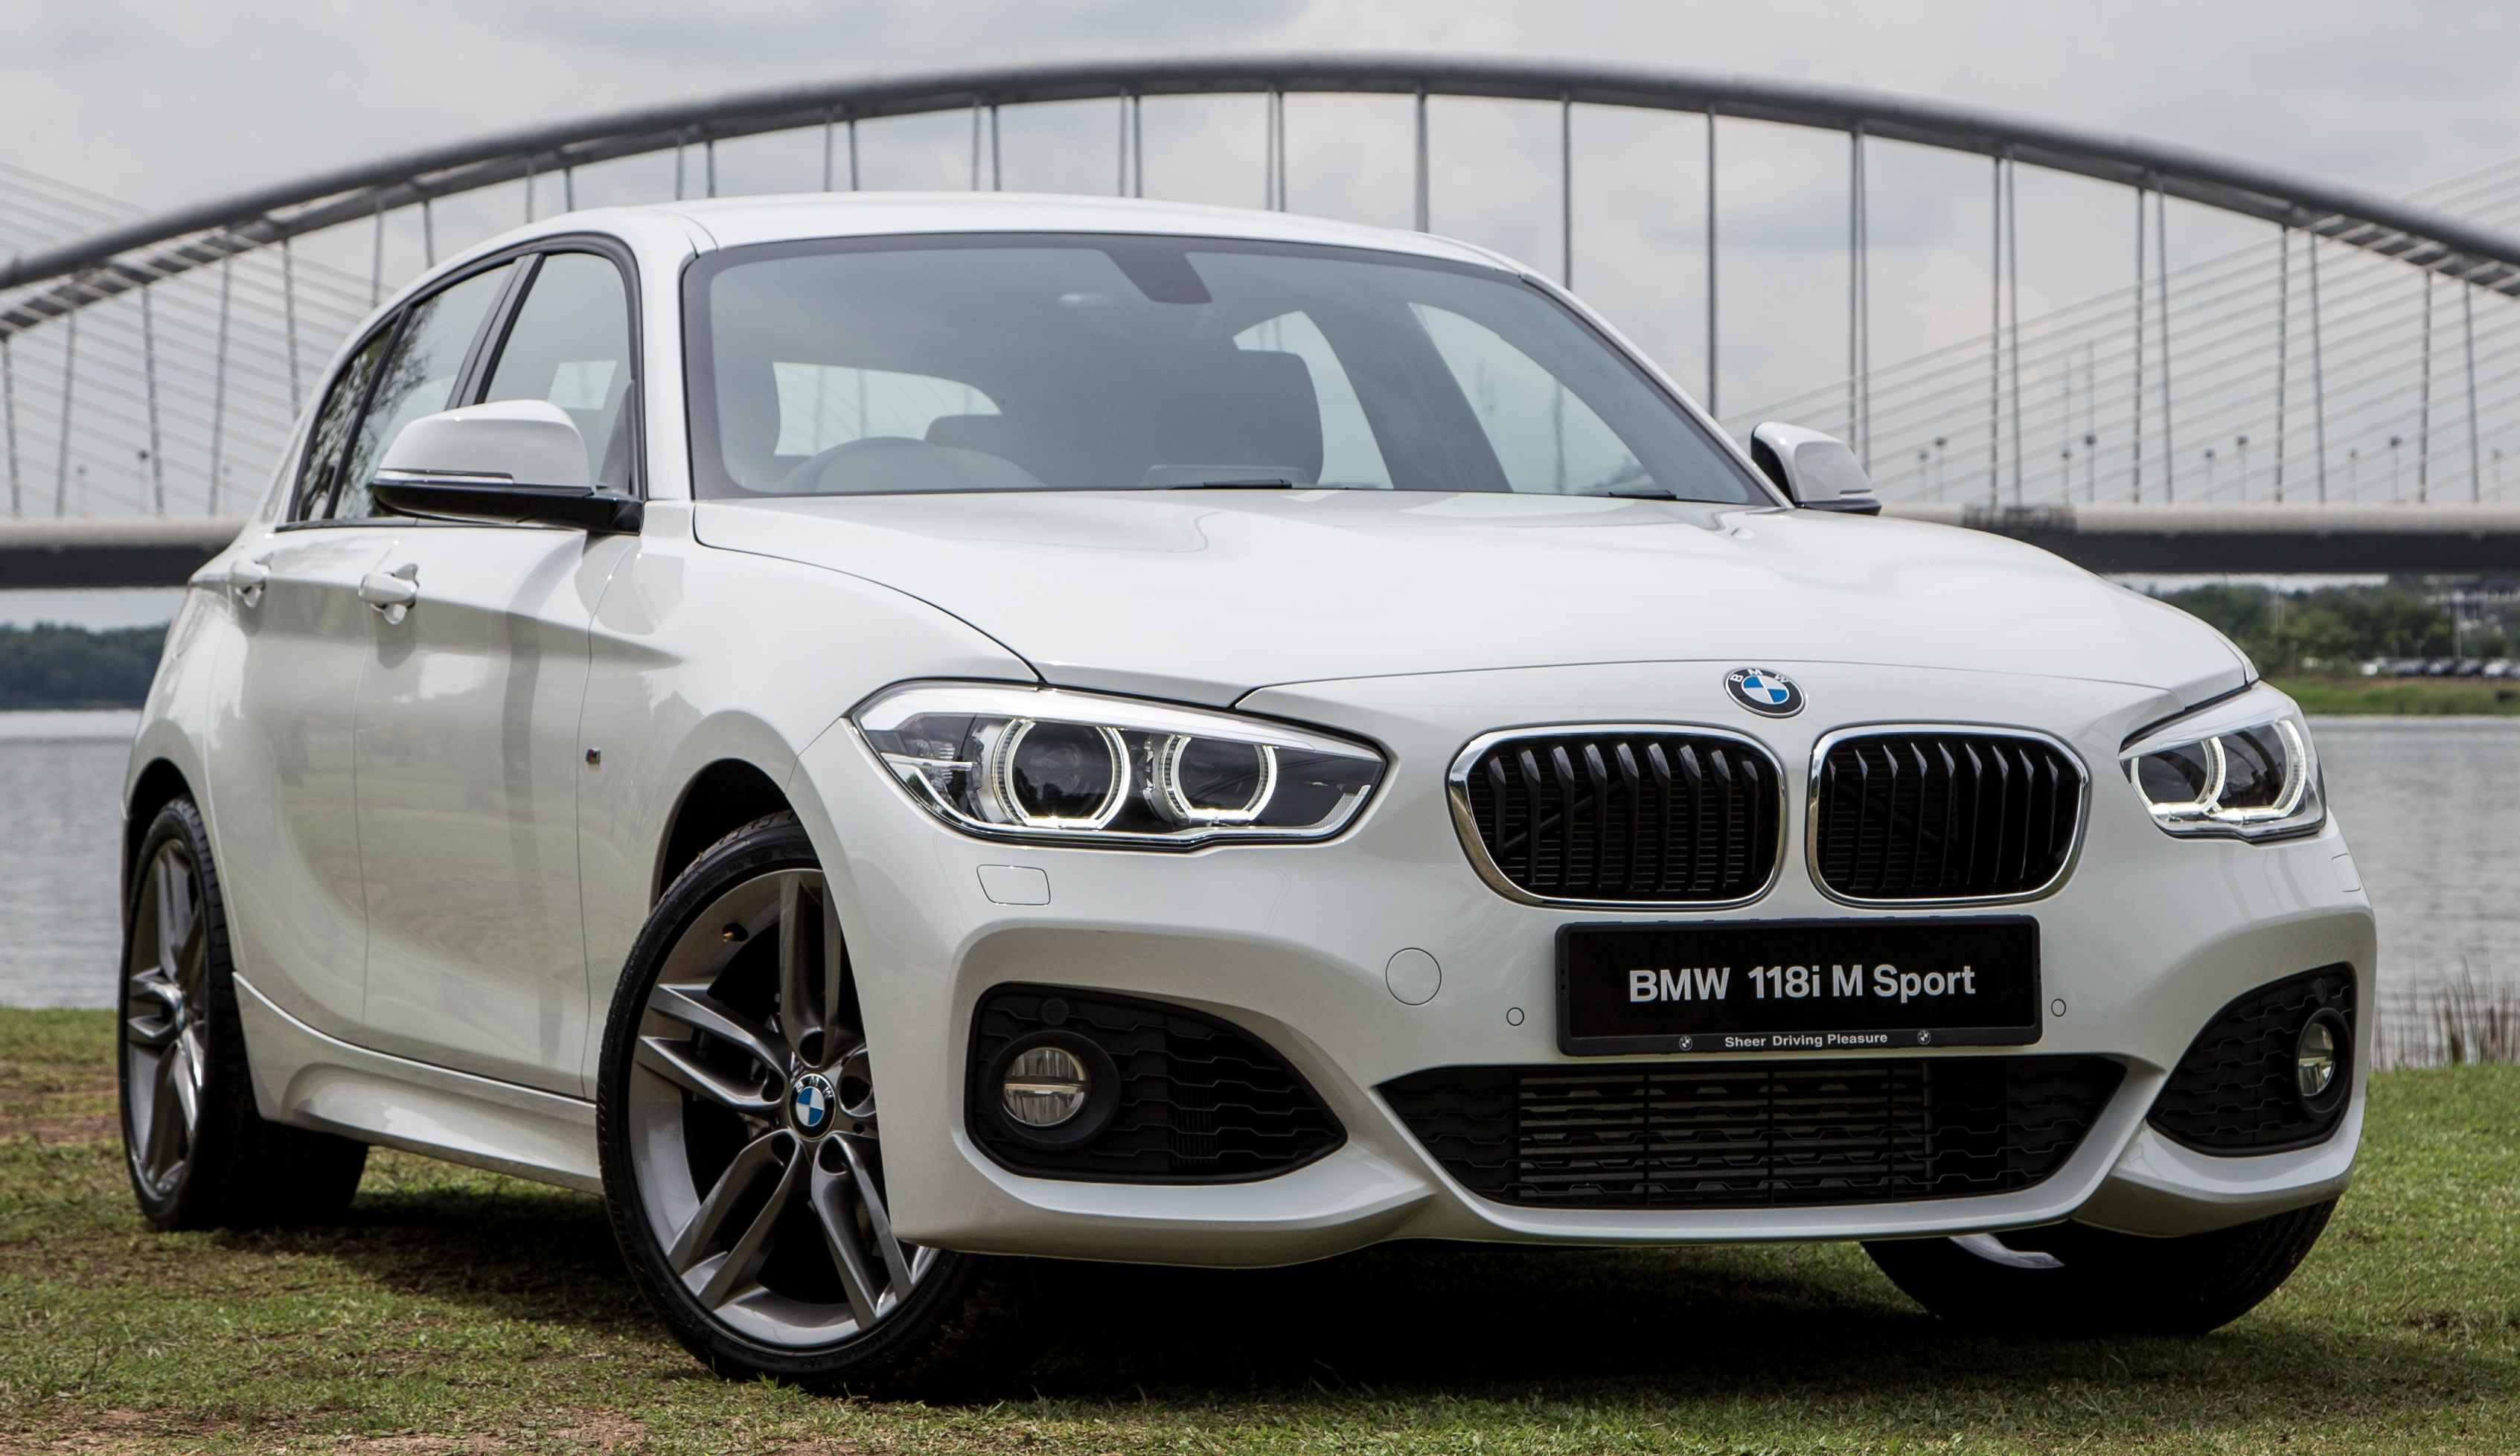 bmw 118i m sport launched in malaysia rm189k. Black Bedroom Furniture Sets. Home Design Ideas